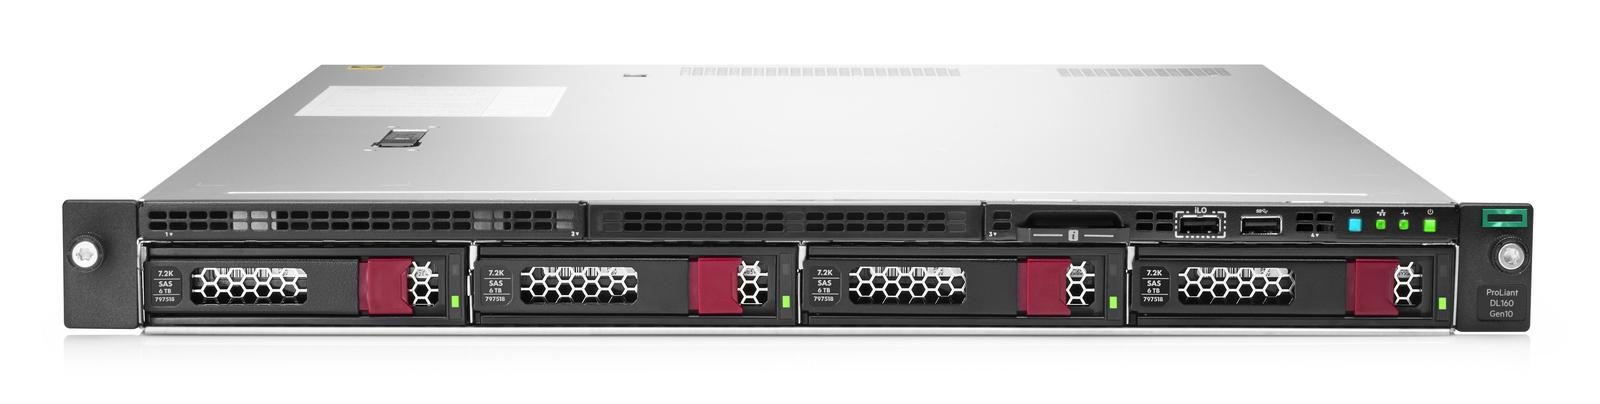 Сервер Proliant DL160 Gen10 Gold 5218 Rack(1U)/Xeon16C 2.3GHz(22Mb)/1x16GbR1D_2933/S100i(ZM/RAID 0/1/10/5)/noHDD(8up)SFF/noDVD/iLOstd/ 3HPfans/2x1GbEth/EasyRK/1x500w(2up)